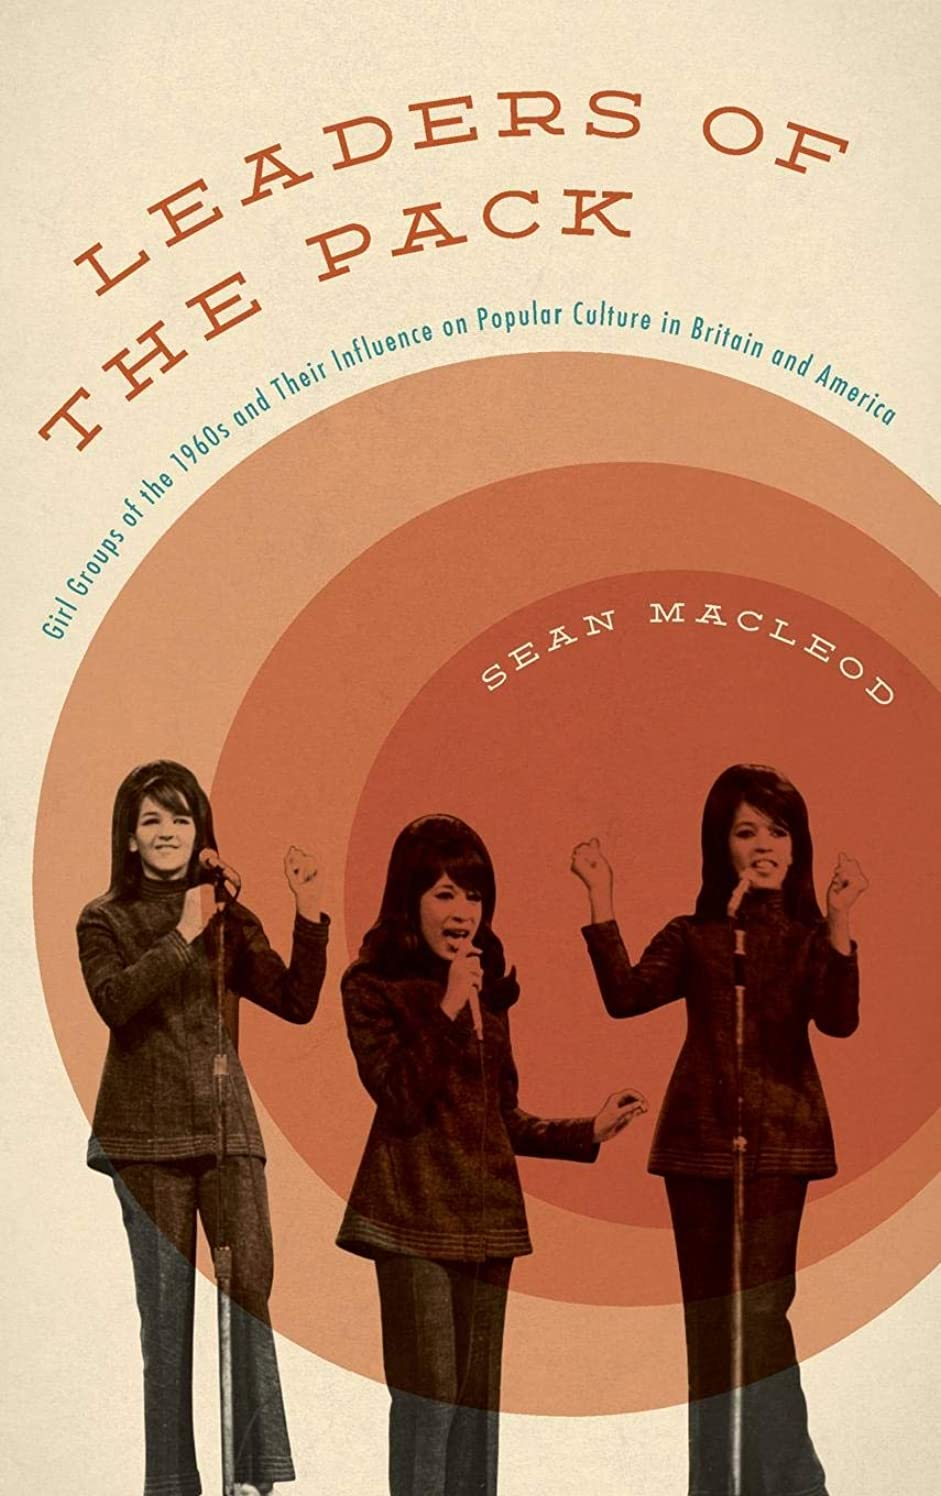 Leaders of the Pack: Girl Groups of the 1960s and Their Influence on Popular Culture in Britain and America